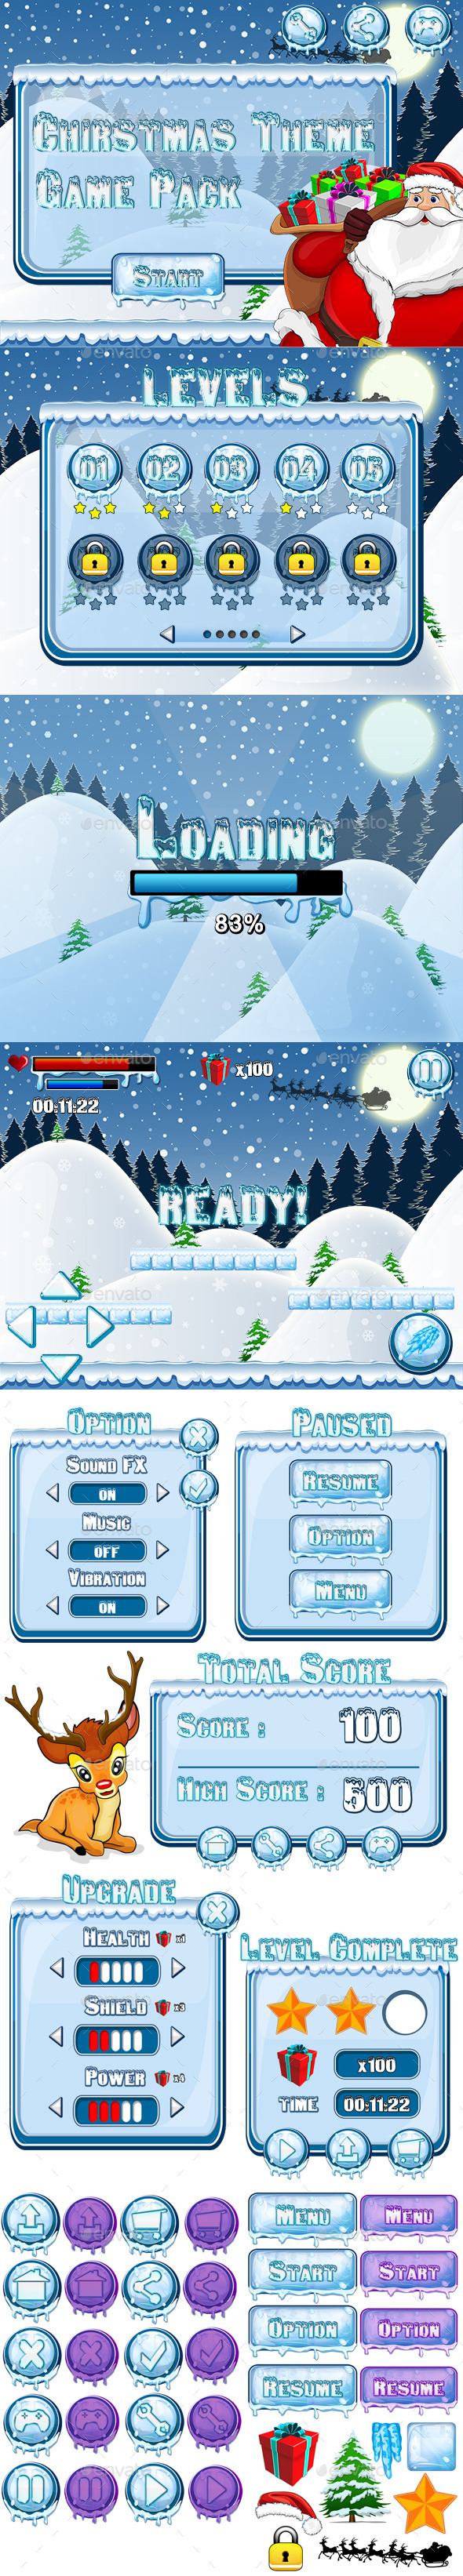 GraphicRiver Mobile Game Pack Christmas Theme 8923961